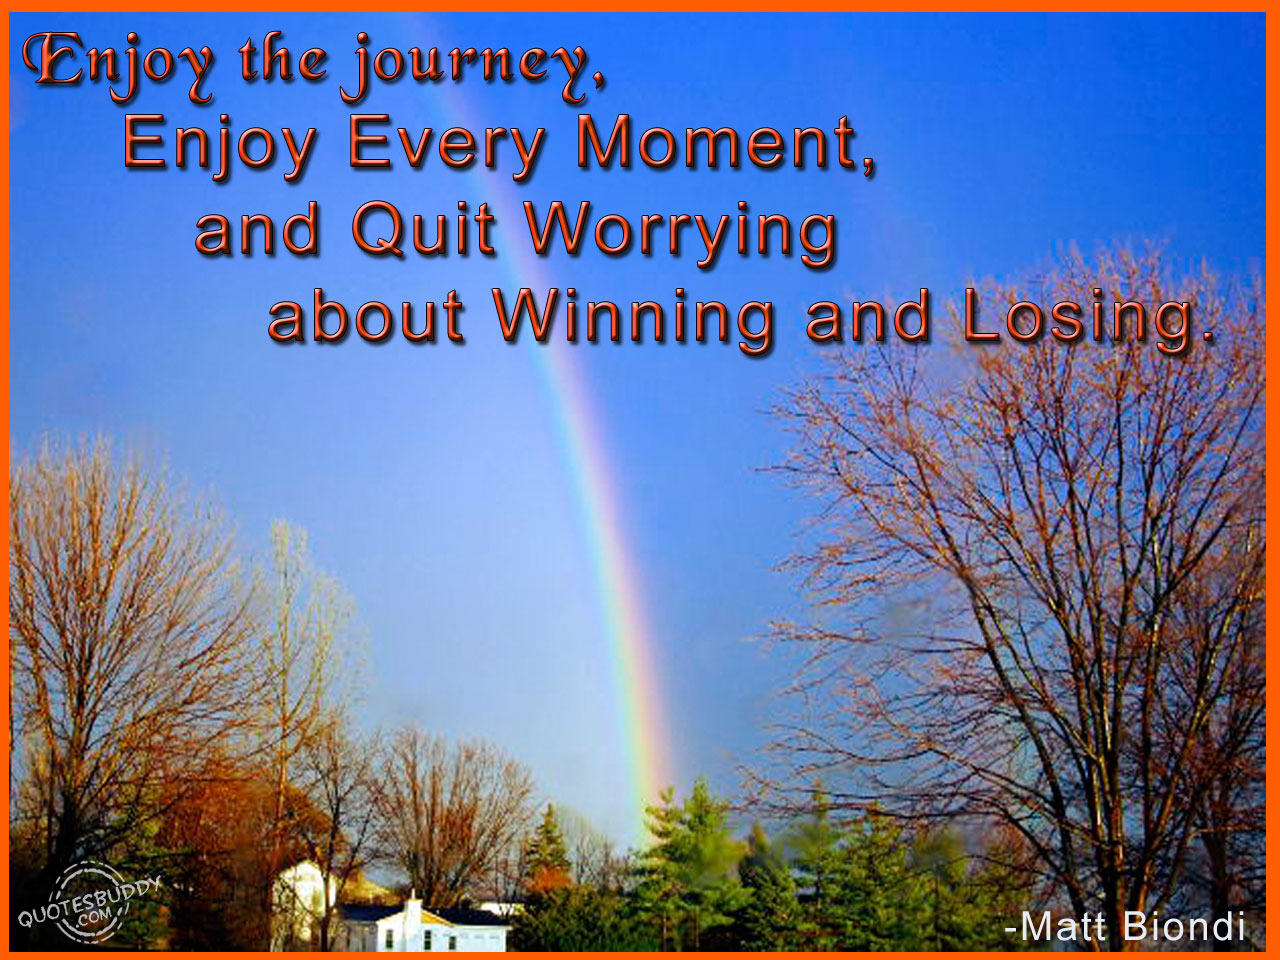 Enjoy The Journey, Enjoy Every Moment, And Quit Worrying About Winning And Losing